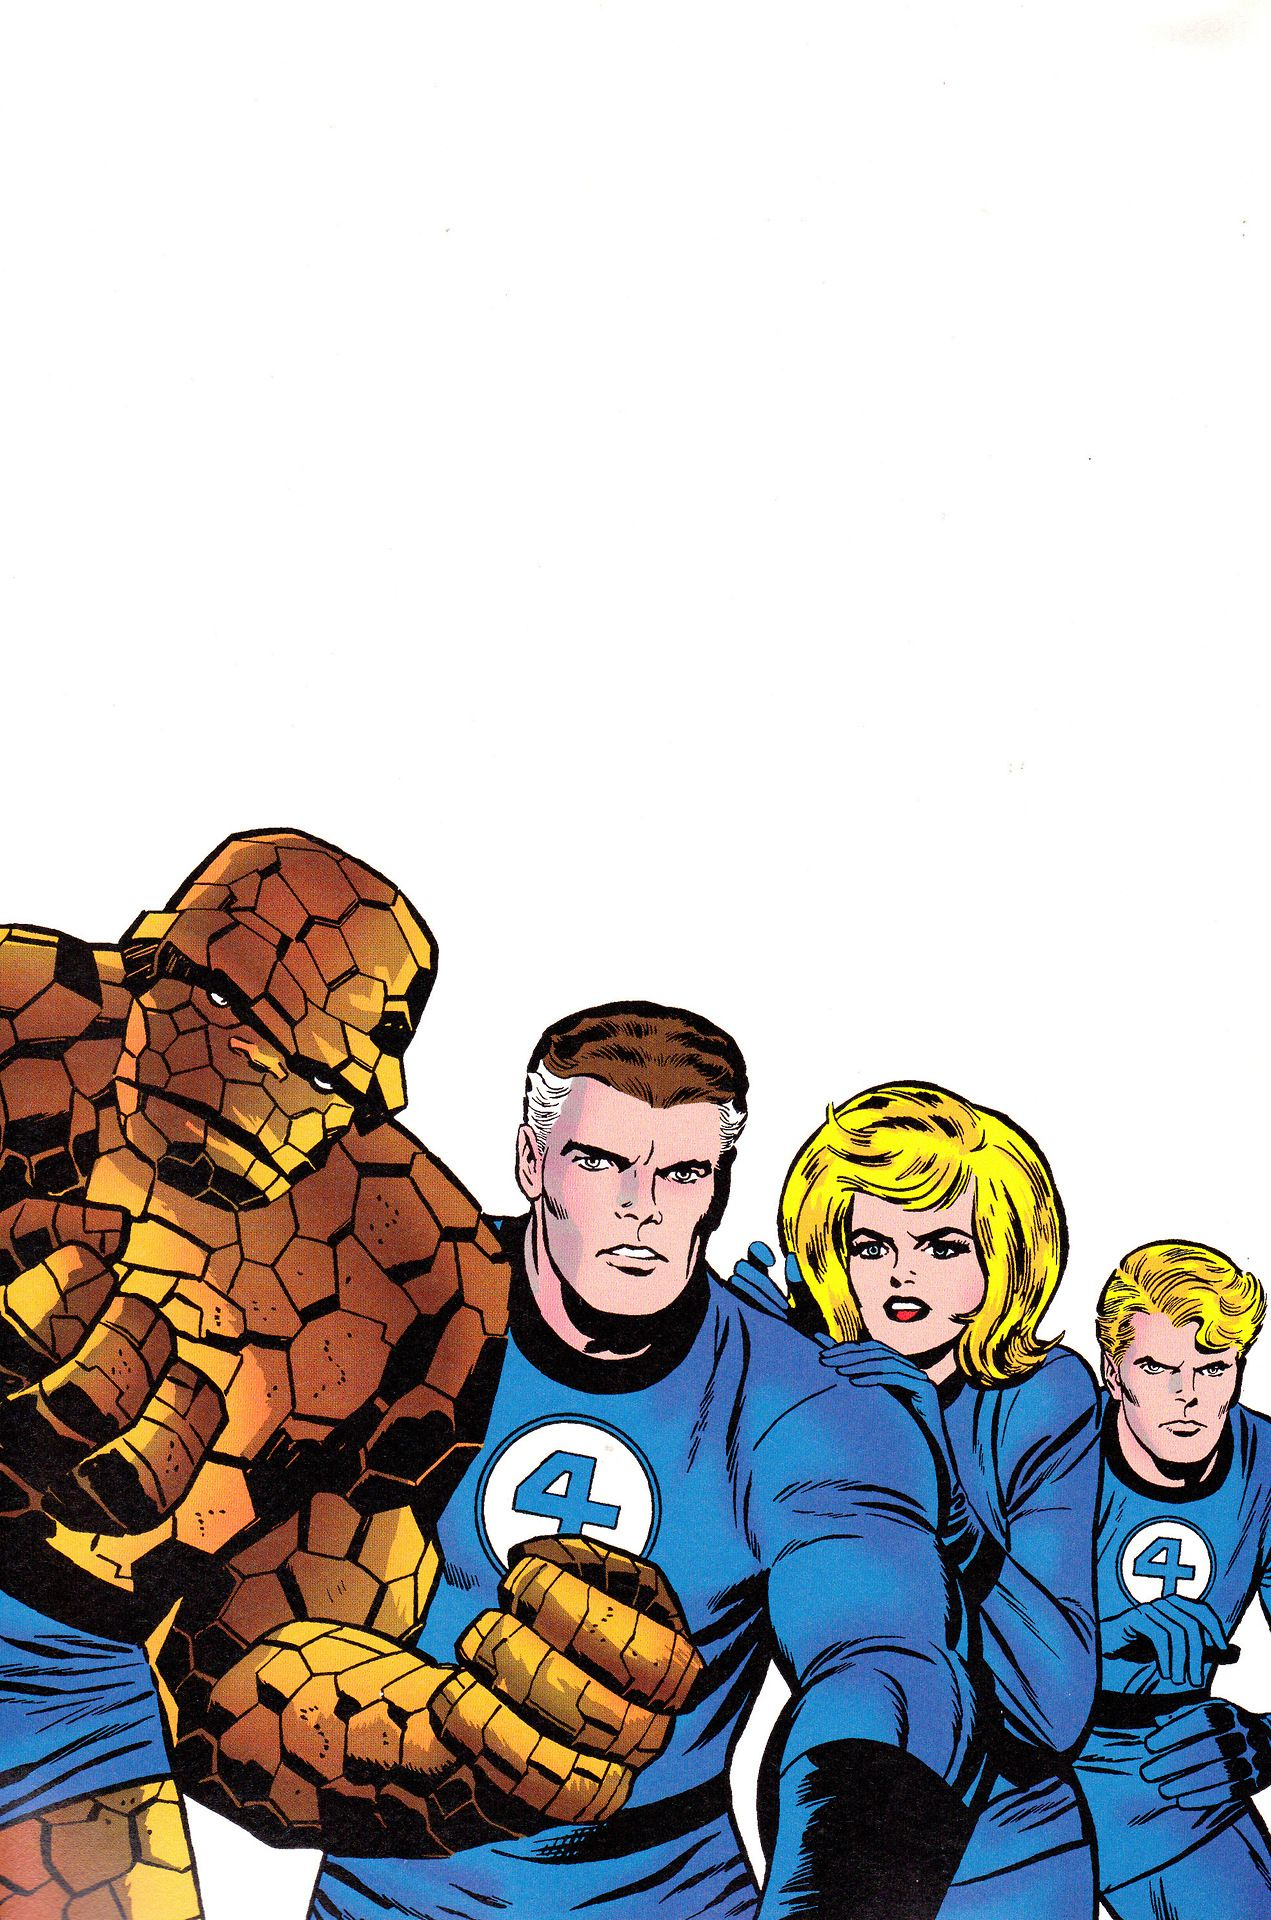 Jthenr Comics Vault The Fantastic Four By Jack Kirby 1965 Superheroes Marvel Personajes De Marvel Marvel Comics